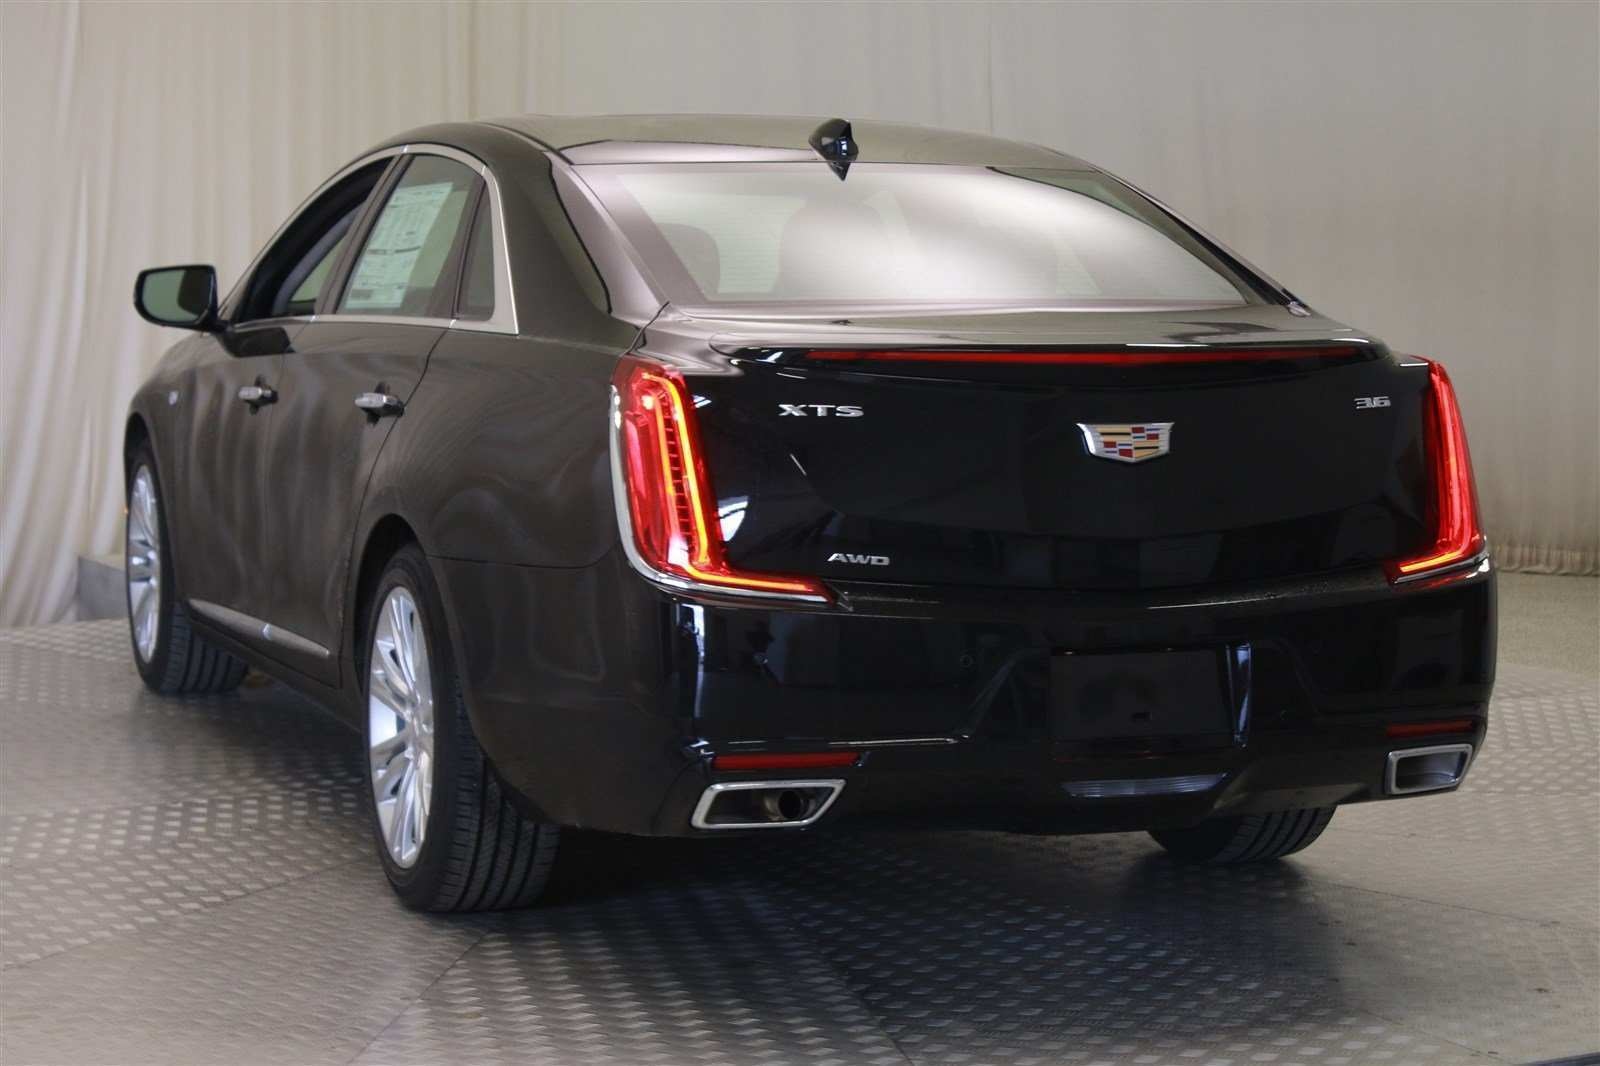 40 New 2019 Candillac Xts New Model And Performance